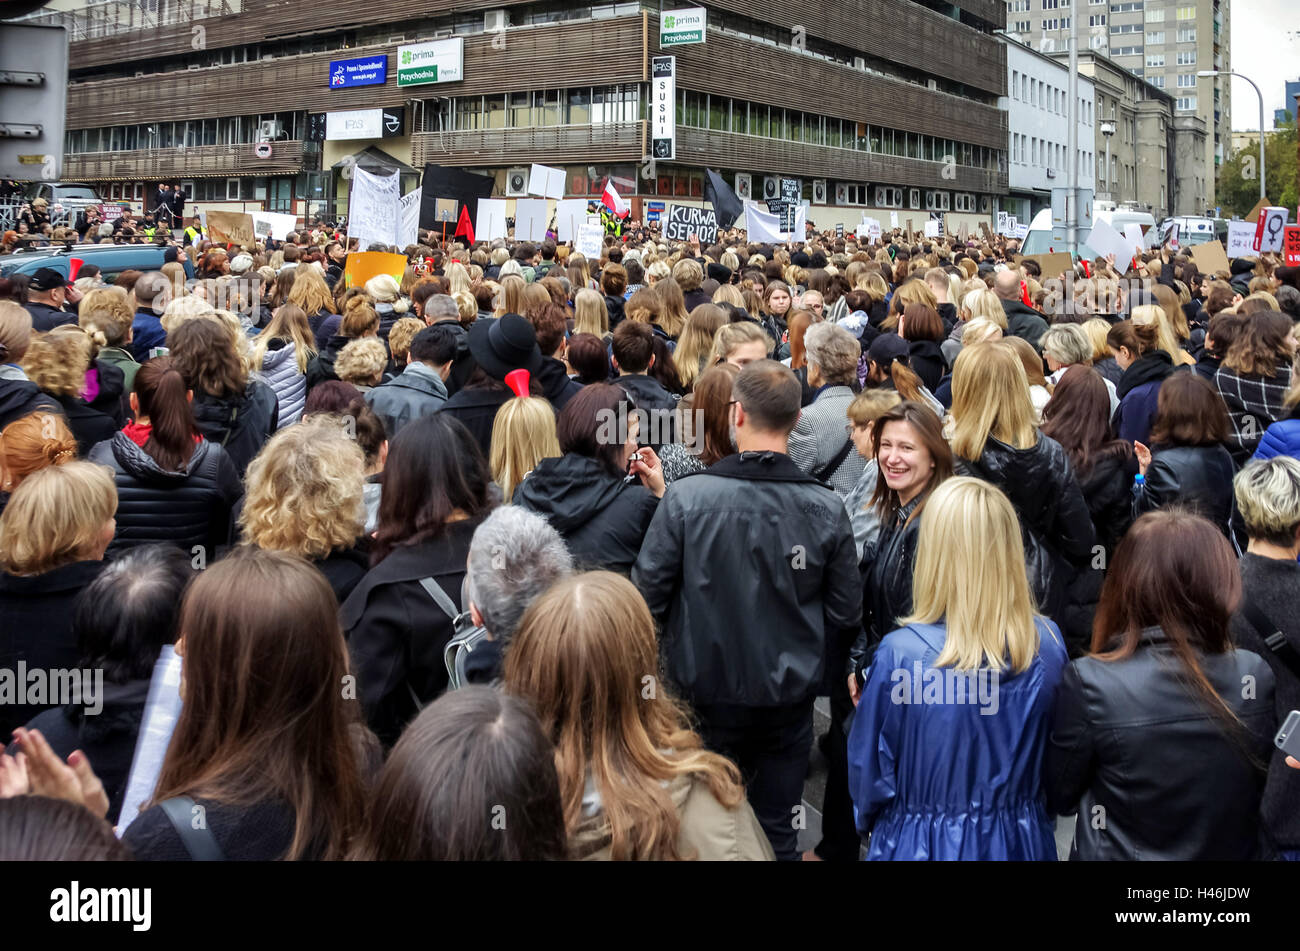 Warsaw, Poland. 03rd October, 2016. Black Protest - Demonstration against more restrictive abortion law regulations - Stock Image